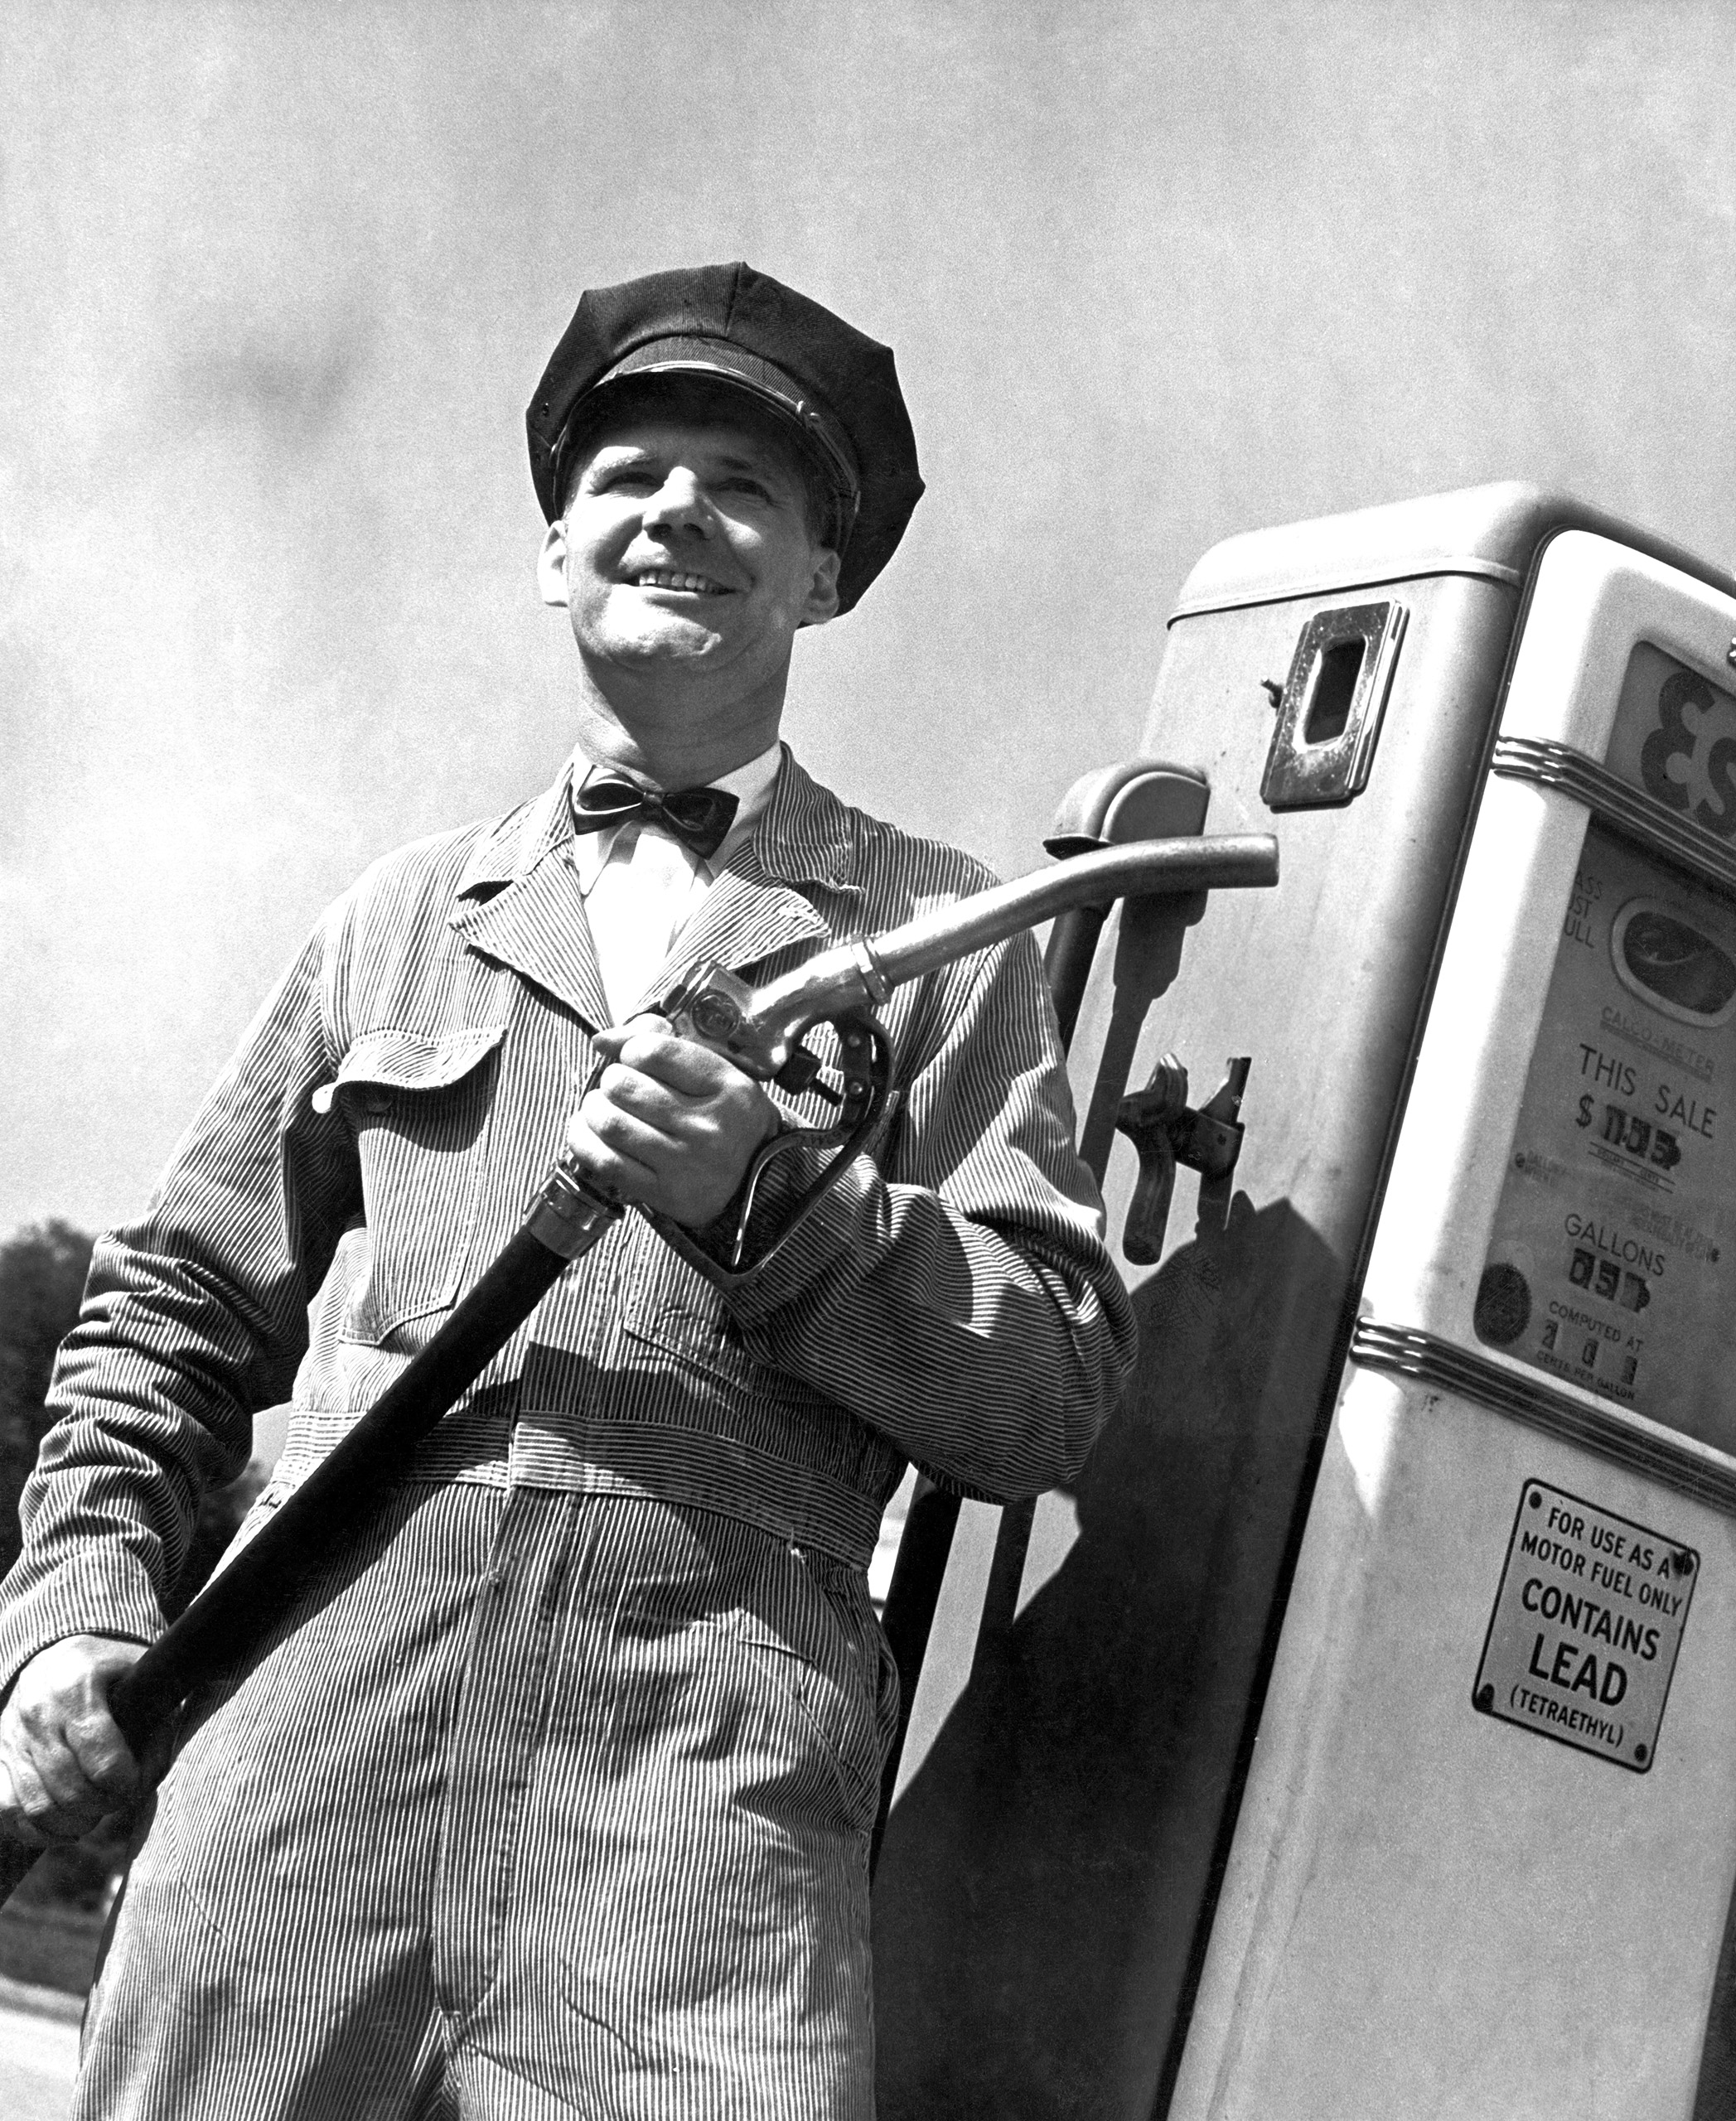 A gas pump attendant at the ready with leaded gas, circa 1955.